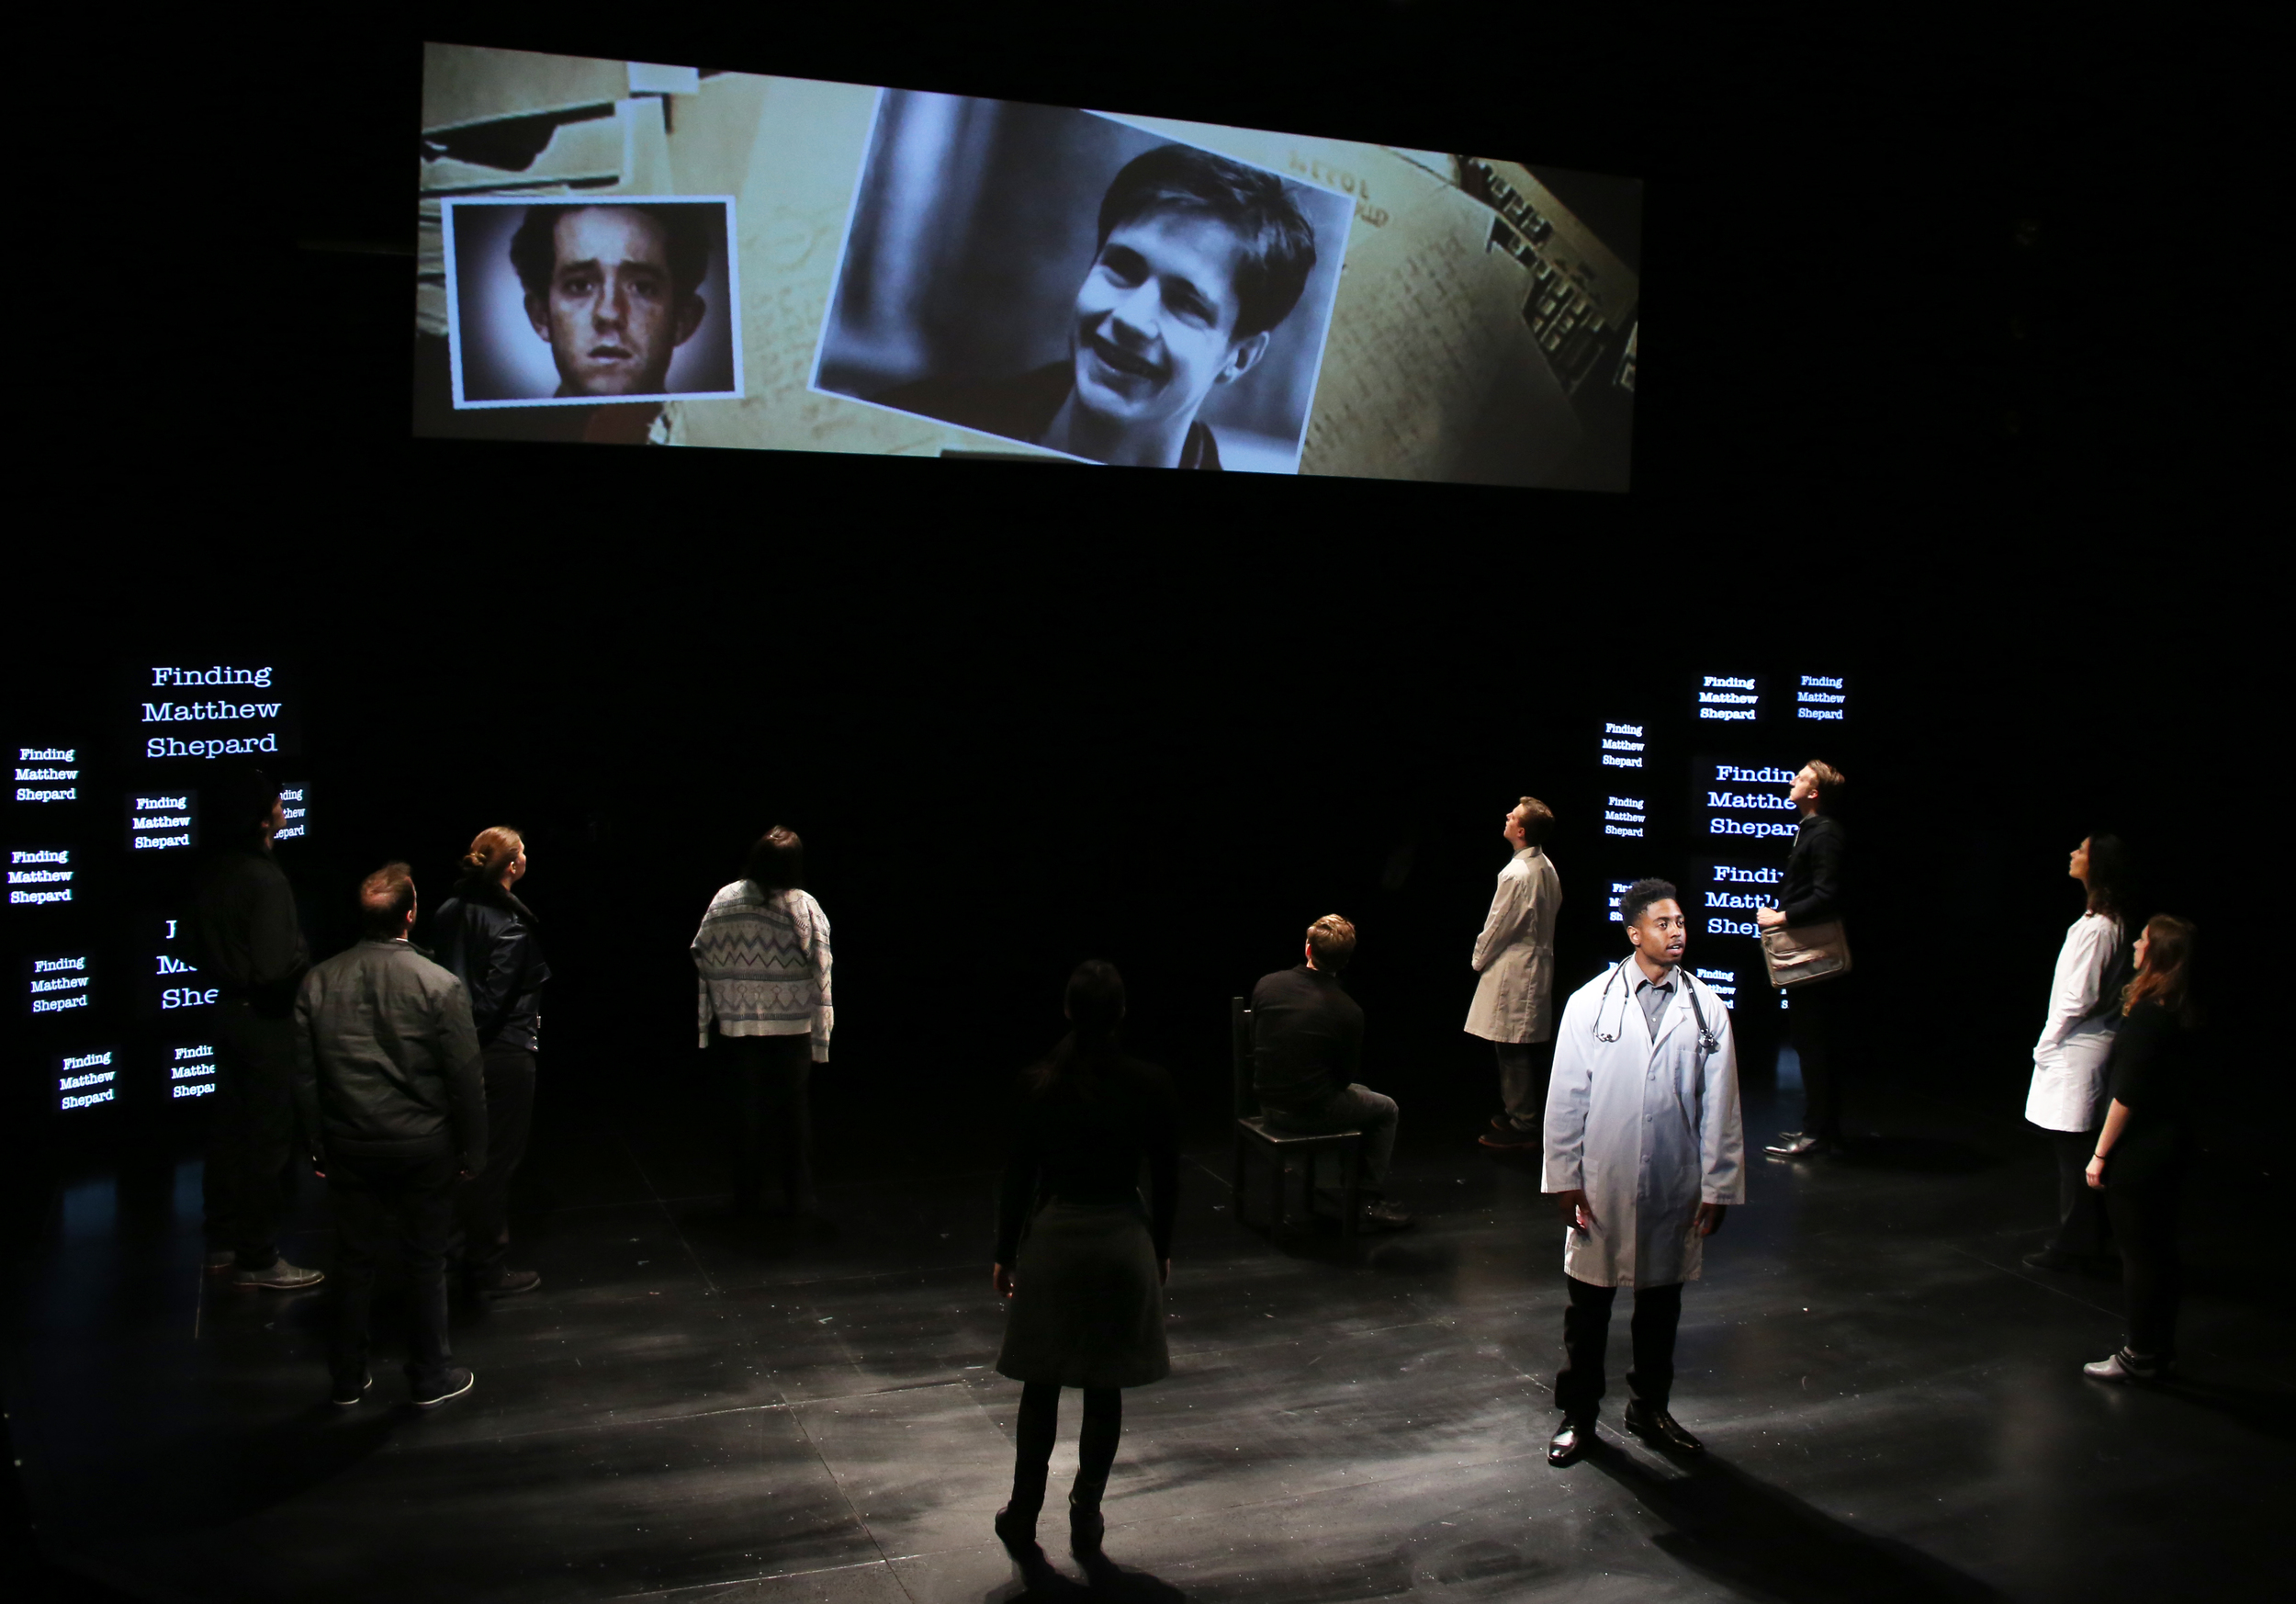 """THE LARAMIE PROJECT by Moisés Kaufman and the members of Tectonic Theatre Project onstage in Connecticut Repertory Theatre's Nafe Katter Theatre from October 8-18, 2015.  Tickets and Info at crt.uconn.edu.  Photo by Gerry Goodstein."